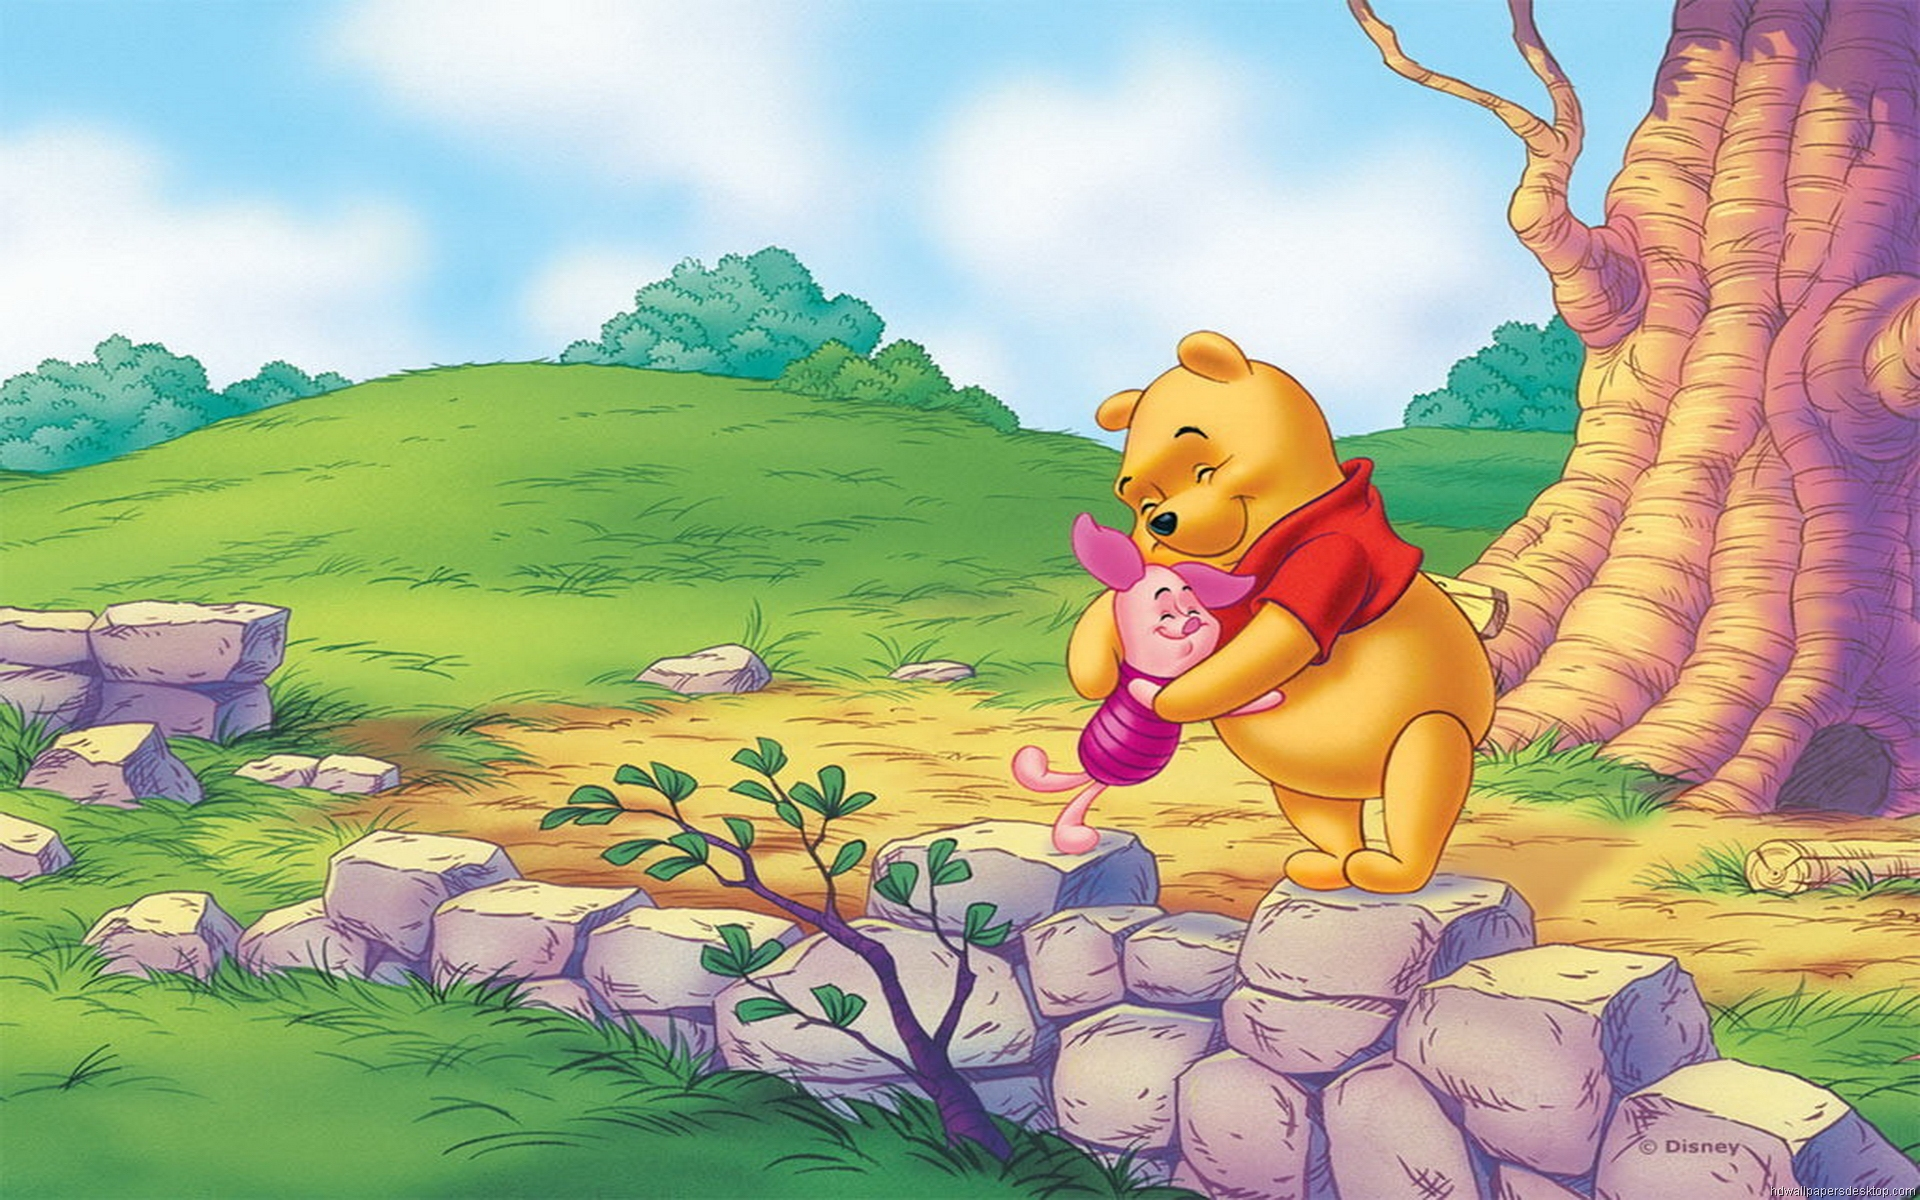 Winnie the pooh wallpaper android phones 9500 wallpaper walldiskpaper winnie the pooh wallpaper android phones voltagebd